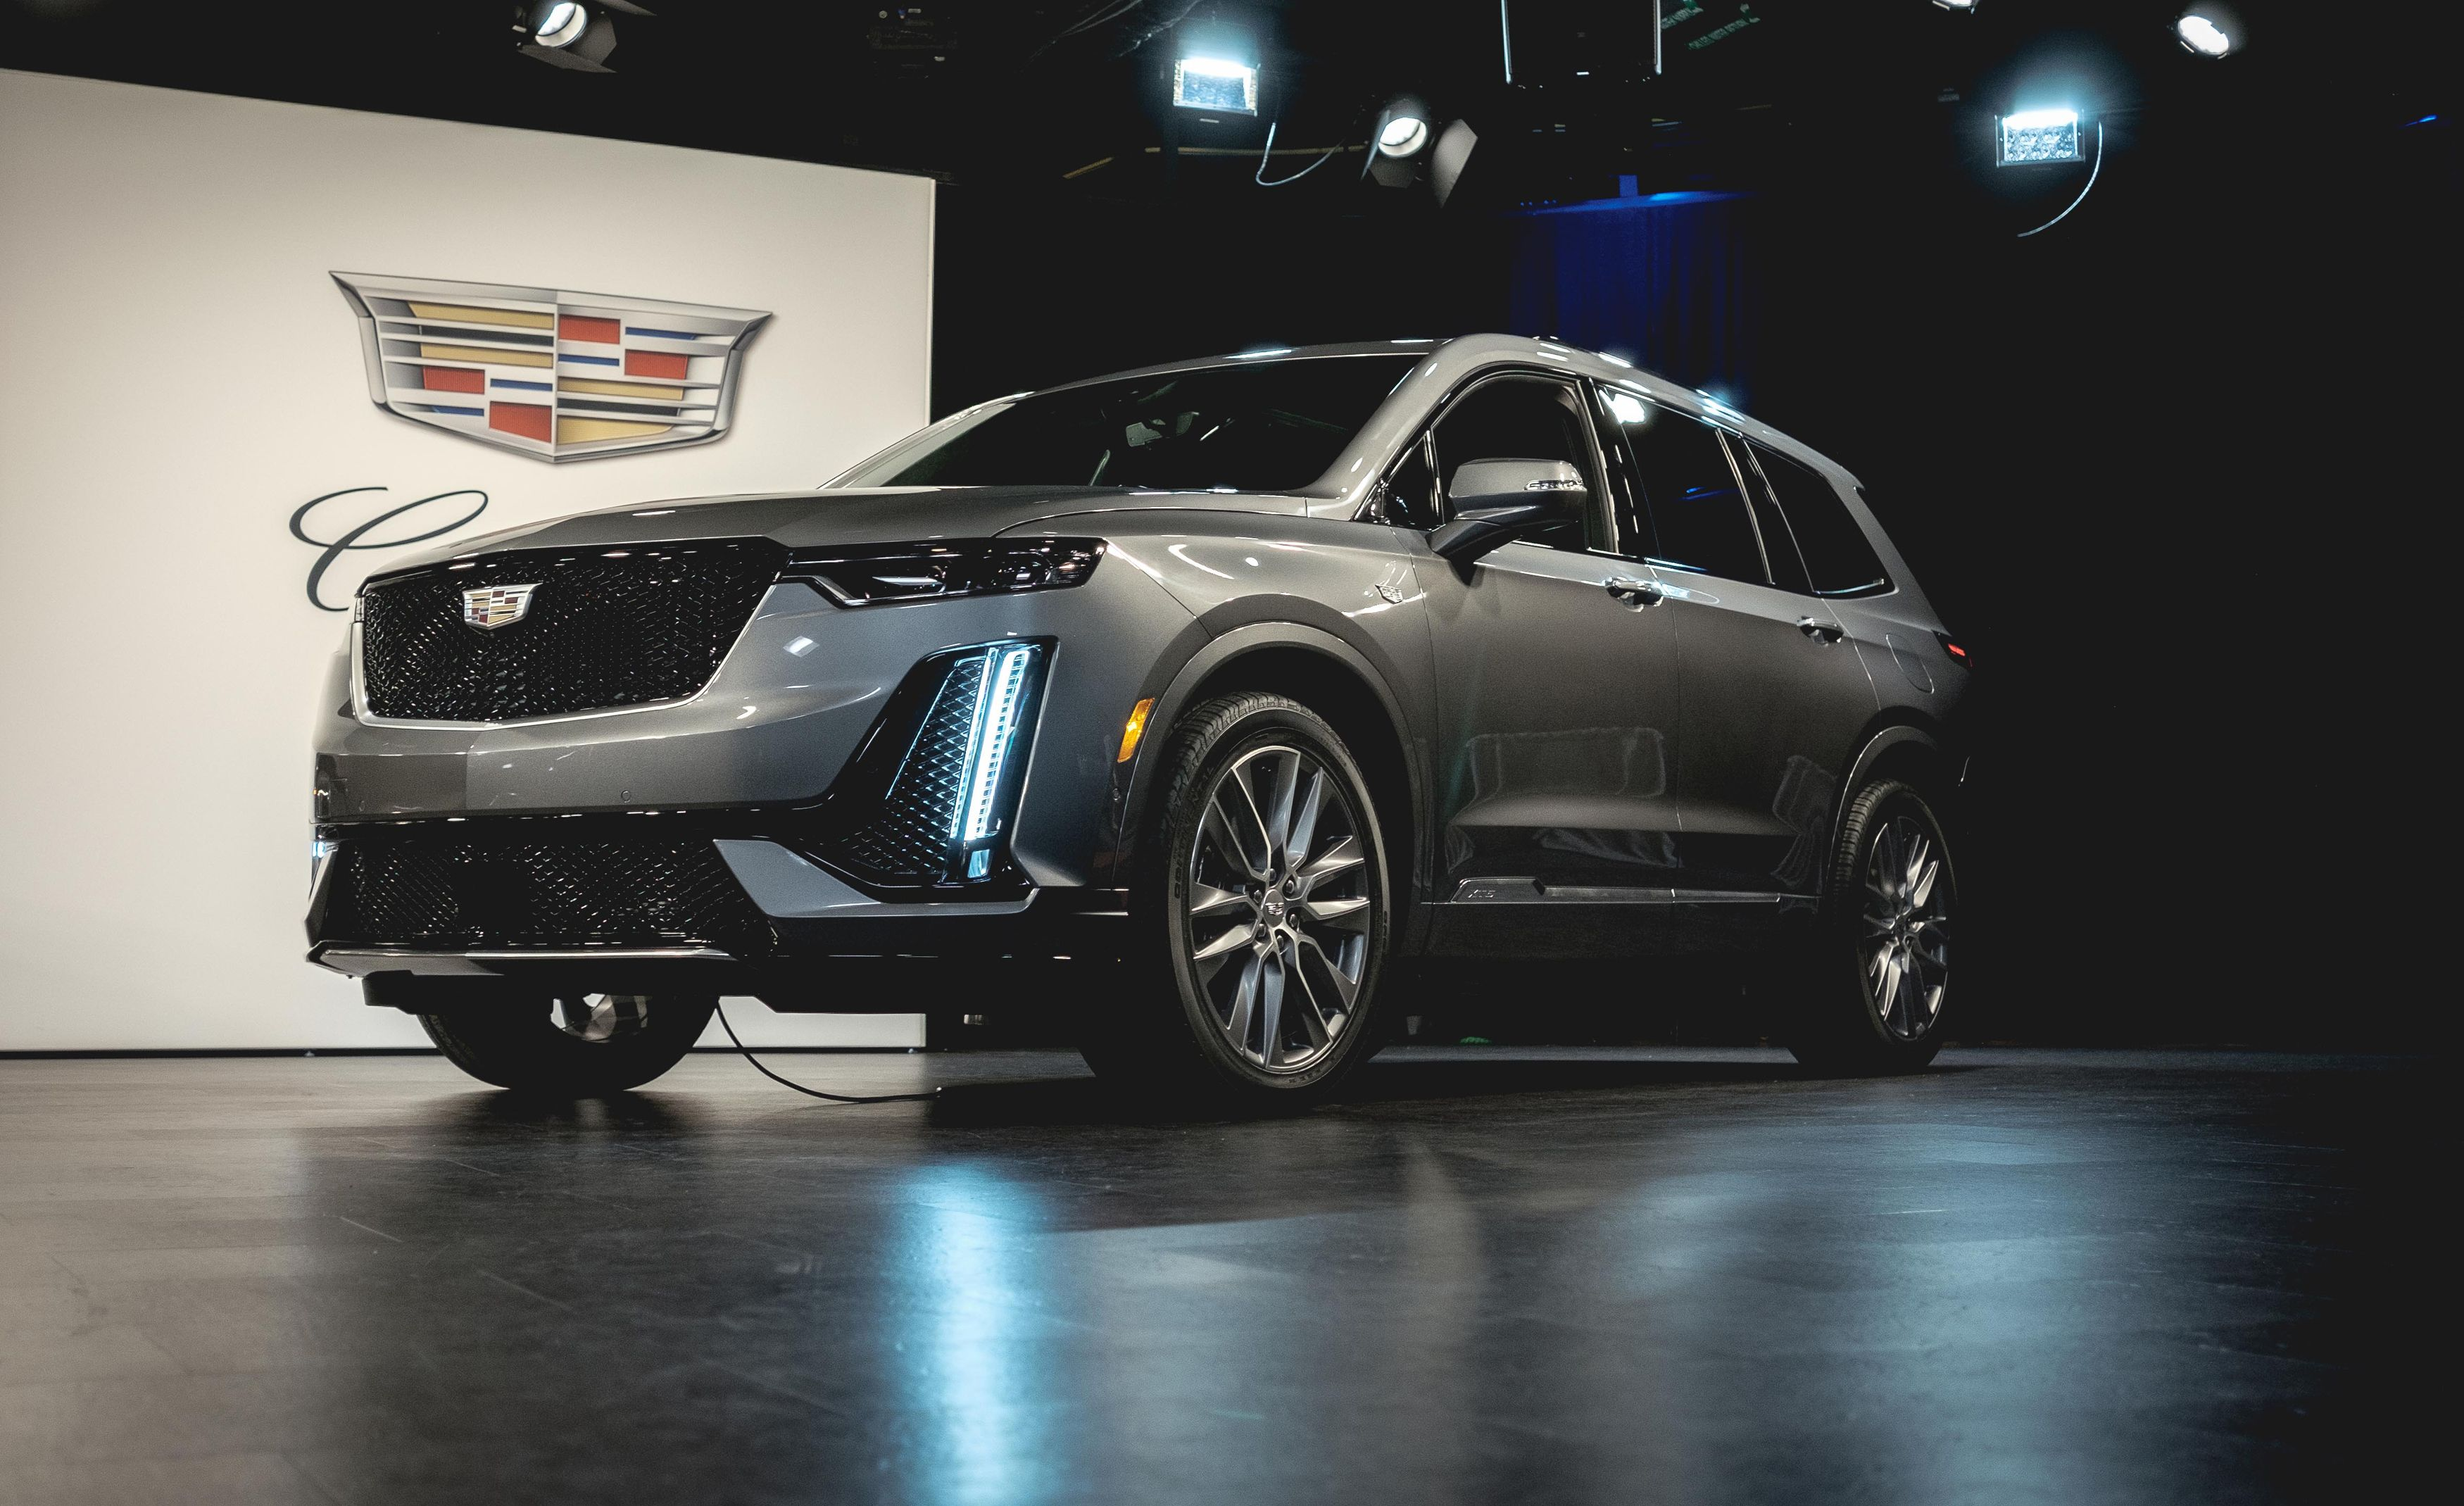 2020 Cadillac XT6: Design, Specs, Equipment, Price >> 2020 Cadillac Xt6 Three Row Luxury Suv Specs Release Date